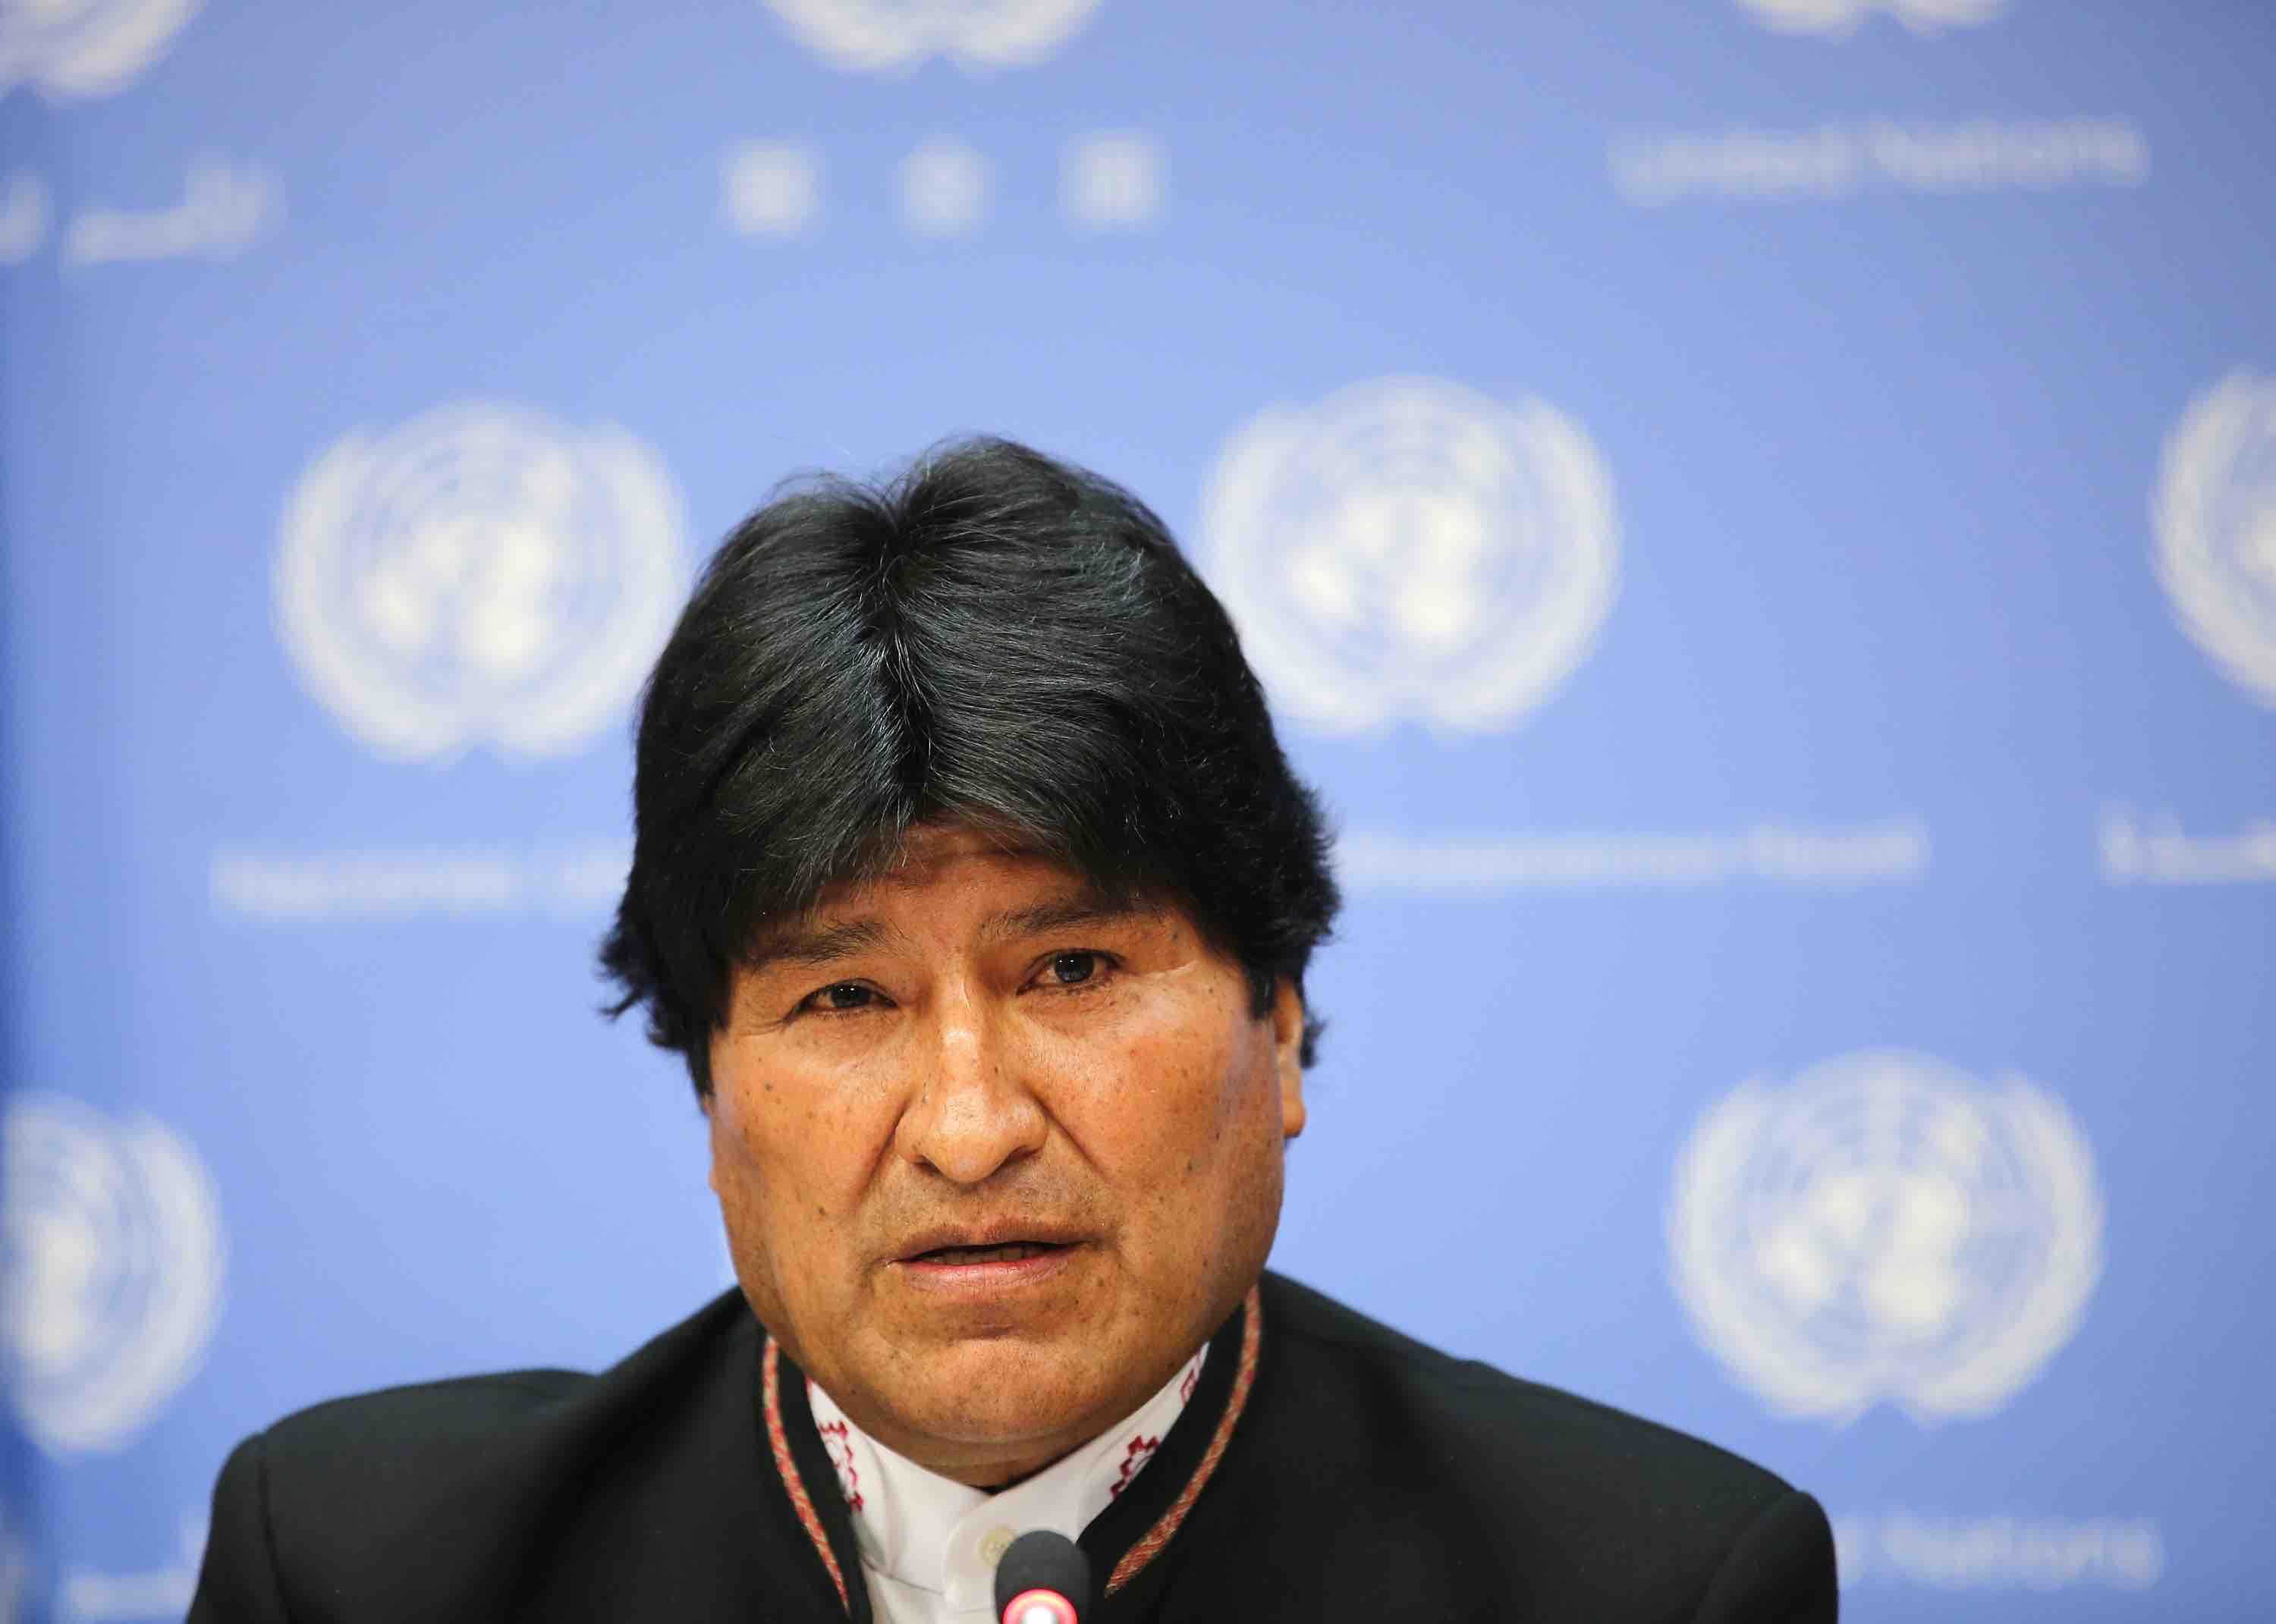 Bolivians Have Taken to the Streets to Protest Against Evo Morales' Re-Election Bid